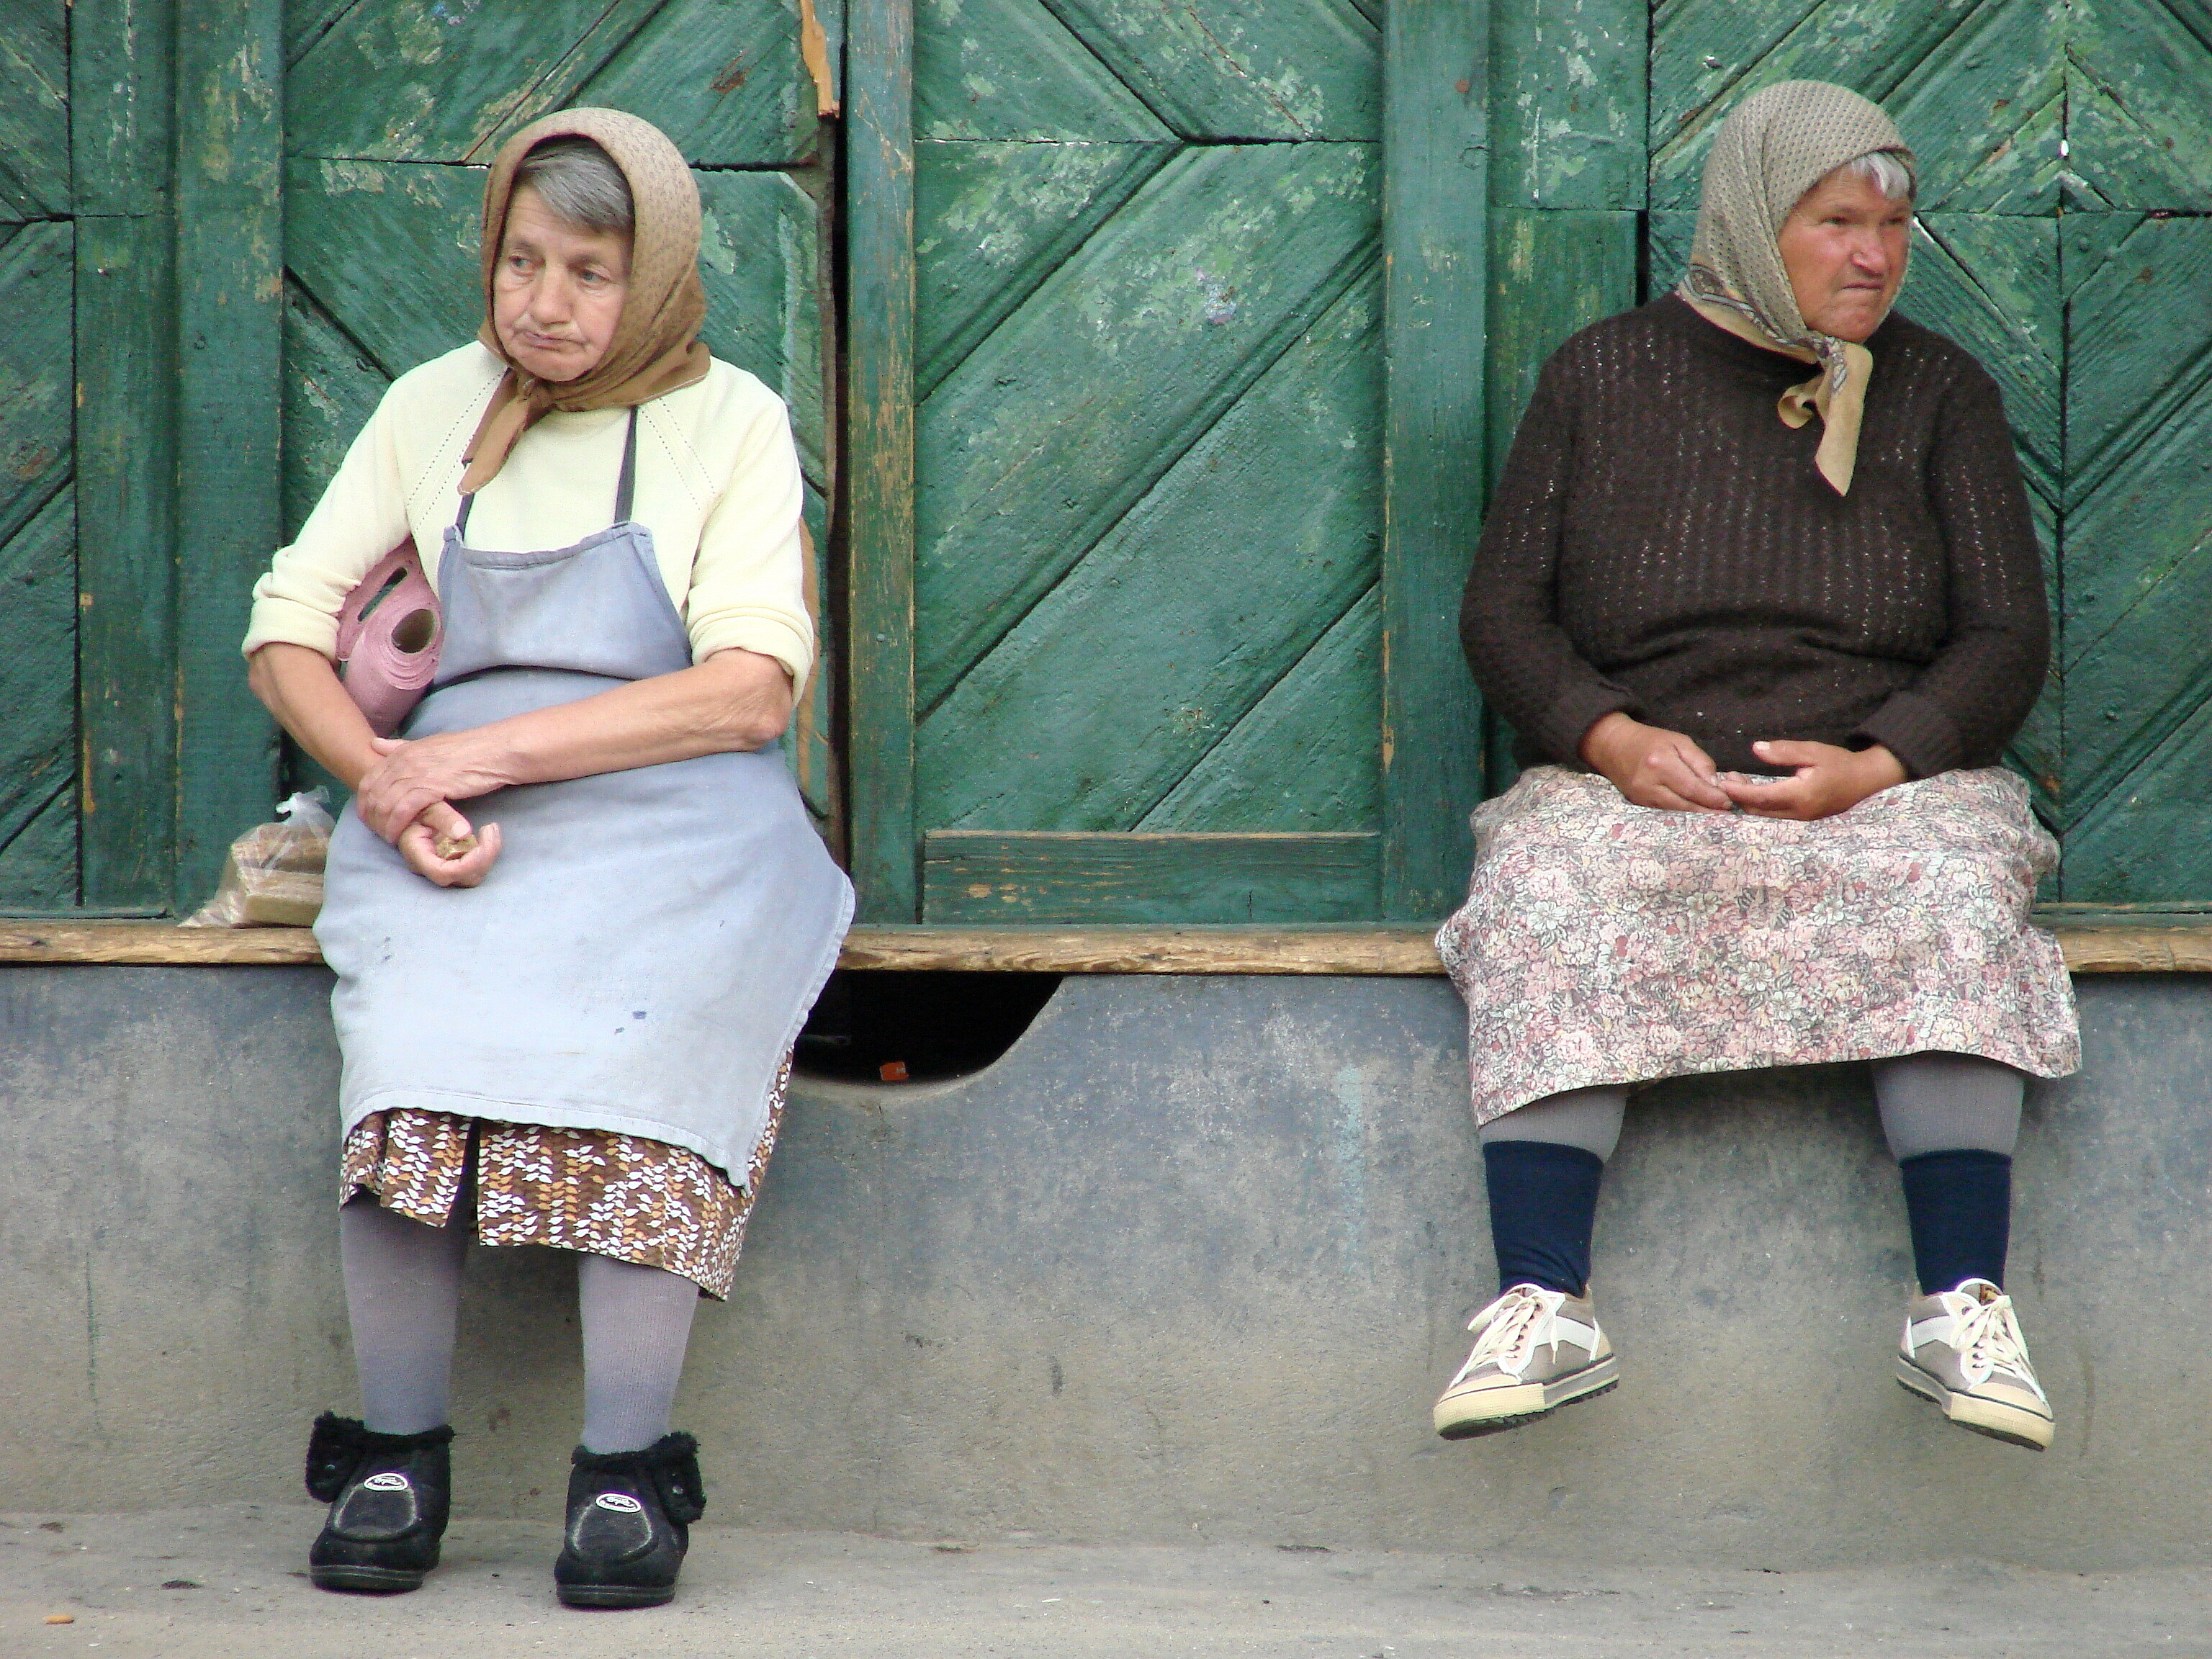 http://upload.wikimedia.org/wikipedia/commons/3/3b/Old_Women_-_Biertan_-_Romania.jpg